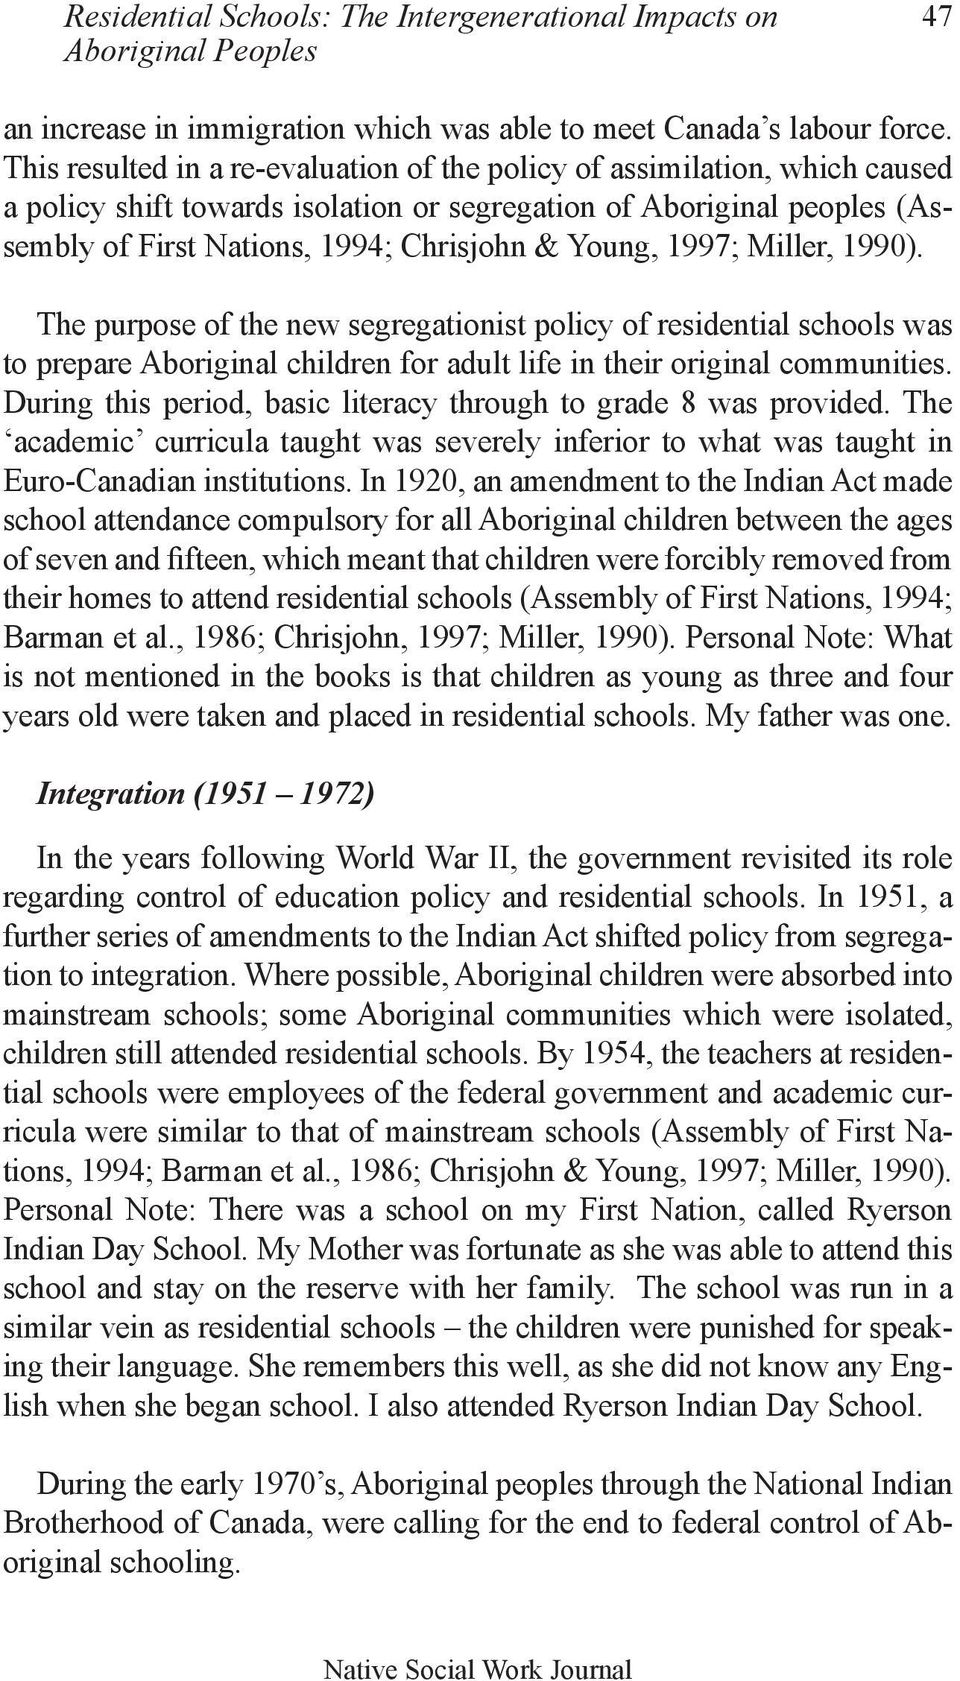 1997; Miller, 1990). The purpose of the new segregationist policy of residential schools was to prepare Aboriginal children for adult life in their original communities.